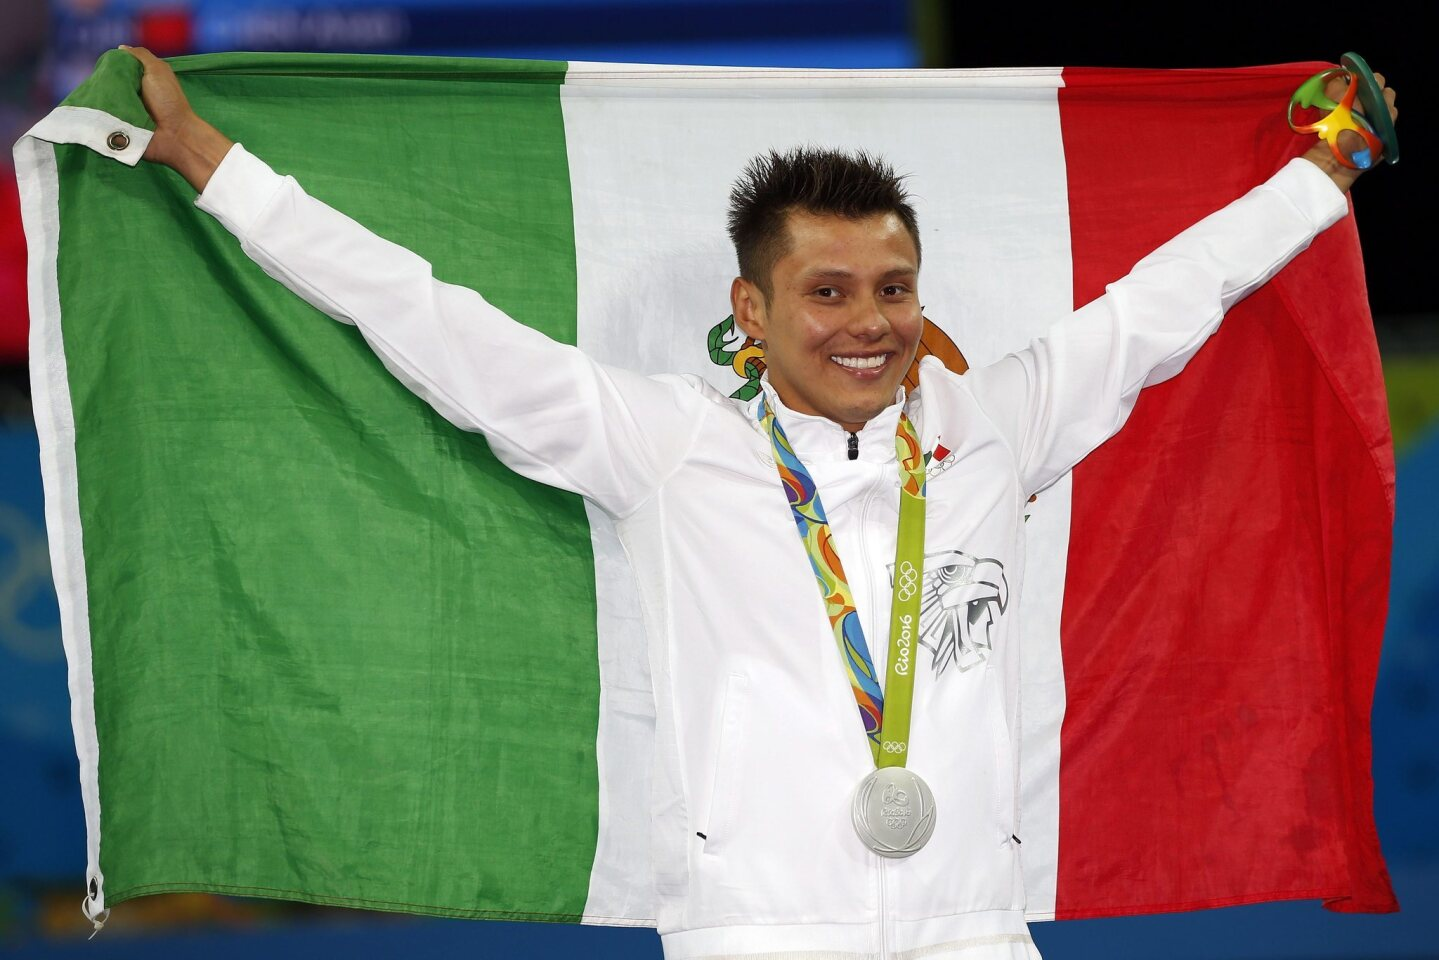 German Sanchez of Mexico poses with his Silver medal after finishing second during the Rio 2016 Olympic Games Men's 10m Platform Diving Final at the Maria Lenk Aquatics Centre in the Olympic Park in Rio de Janeiro, Brazil.